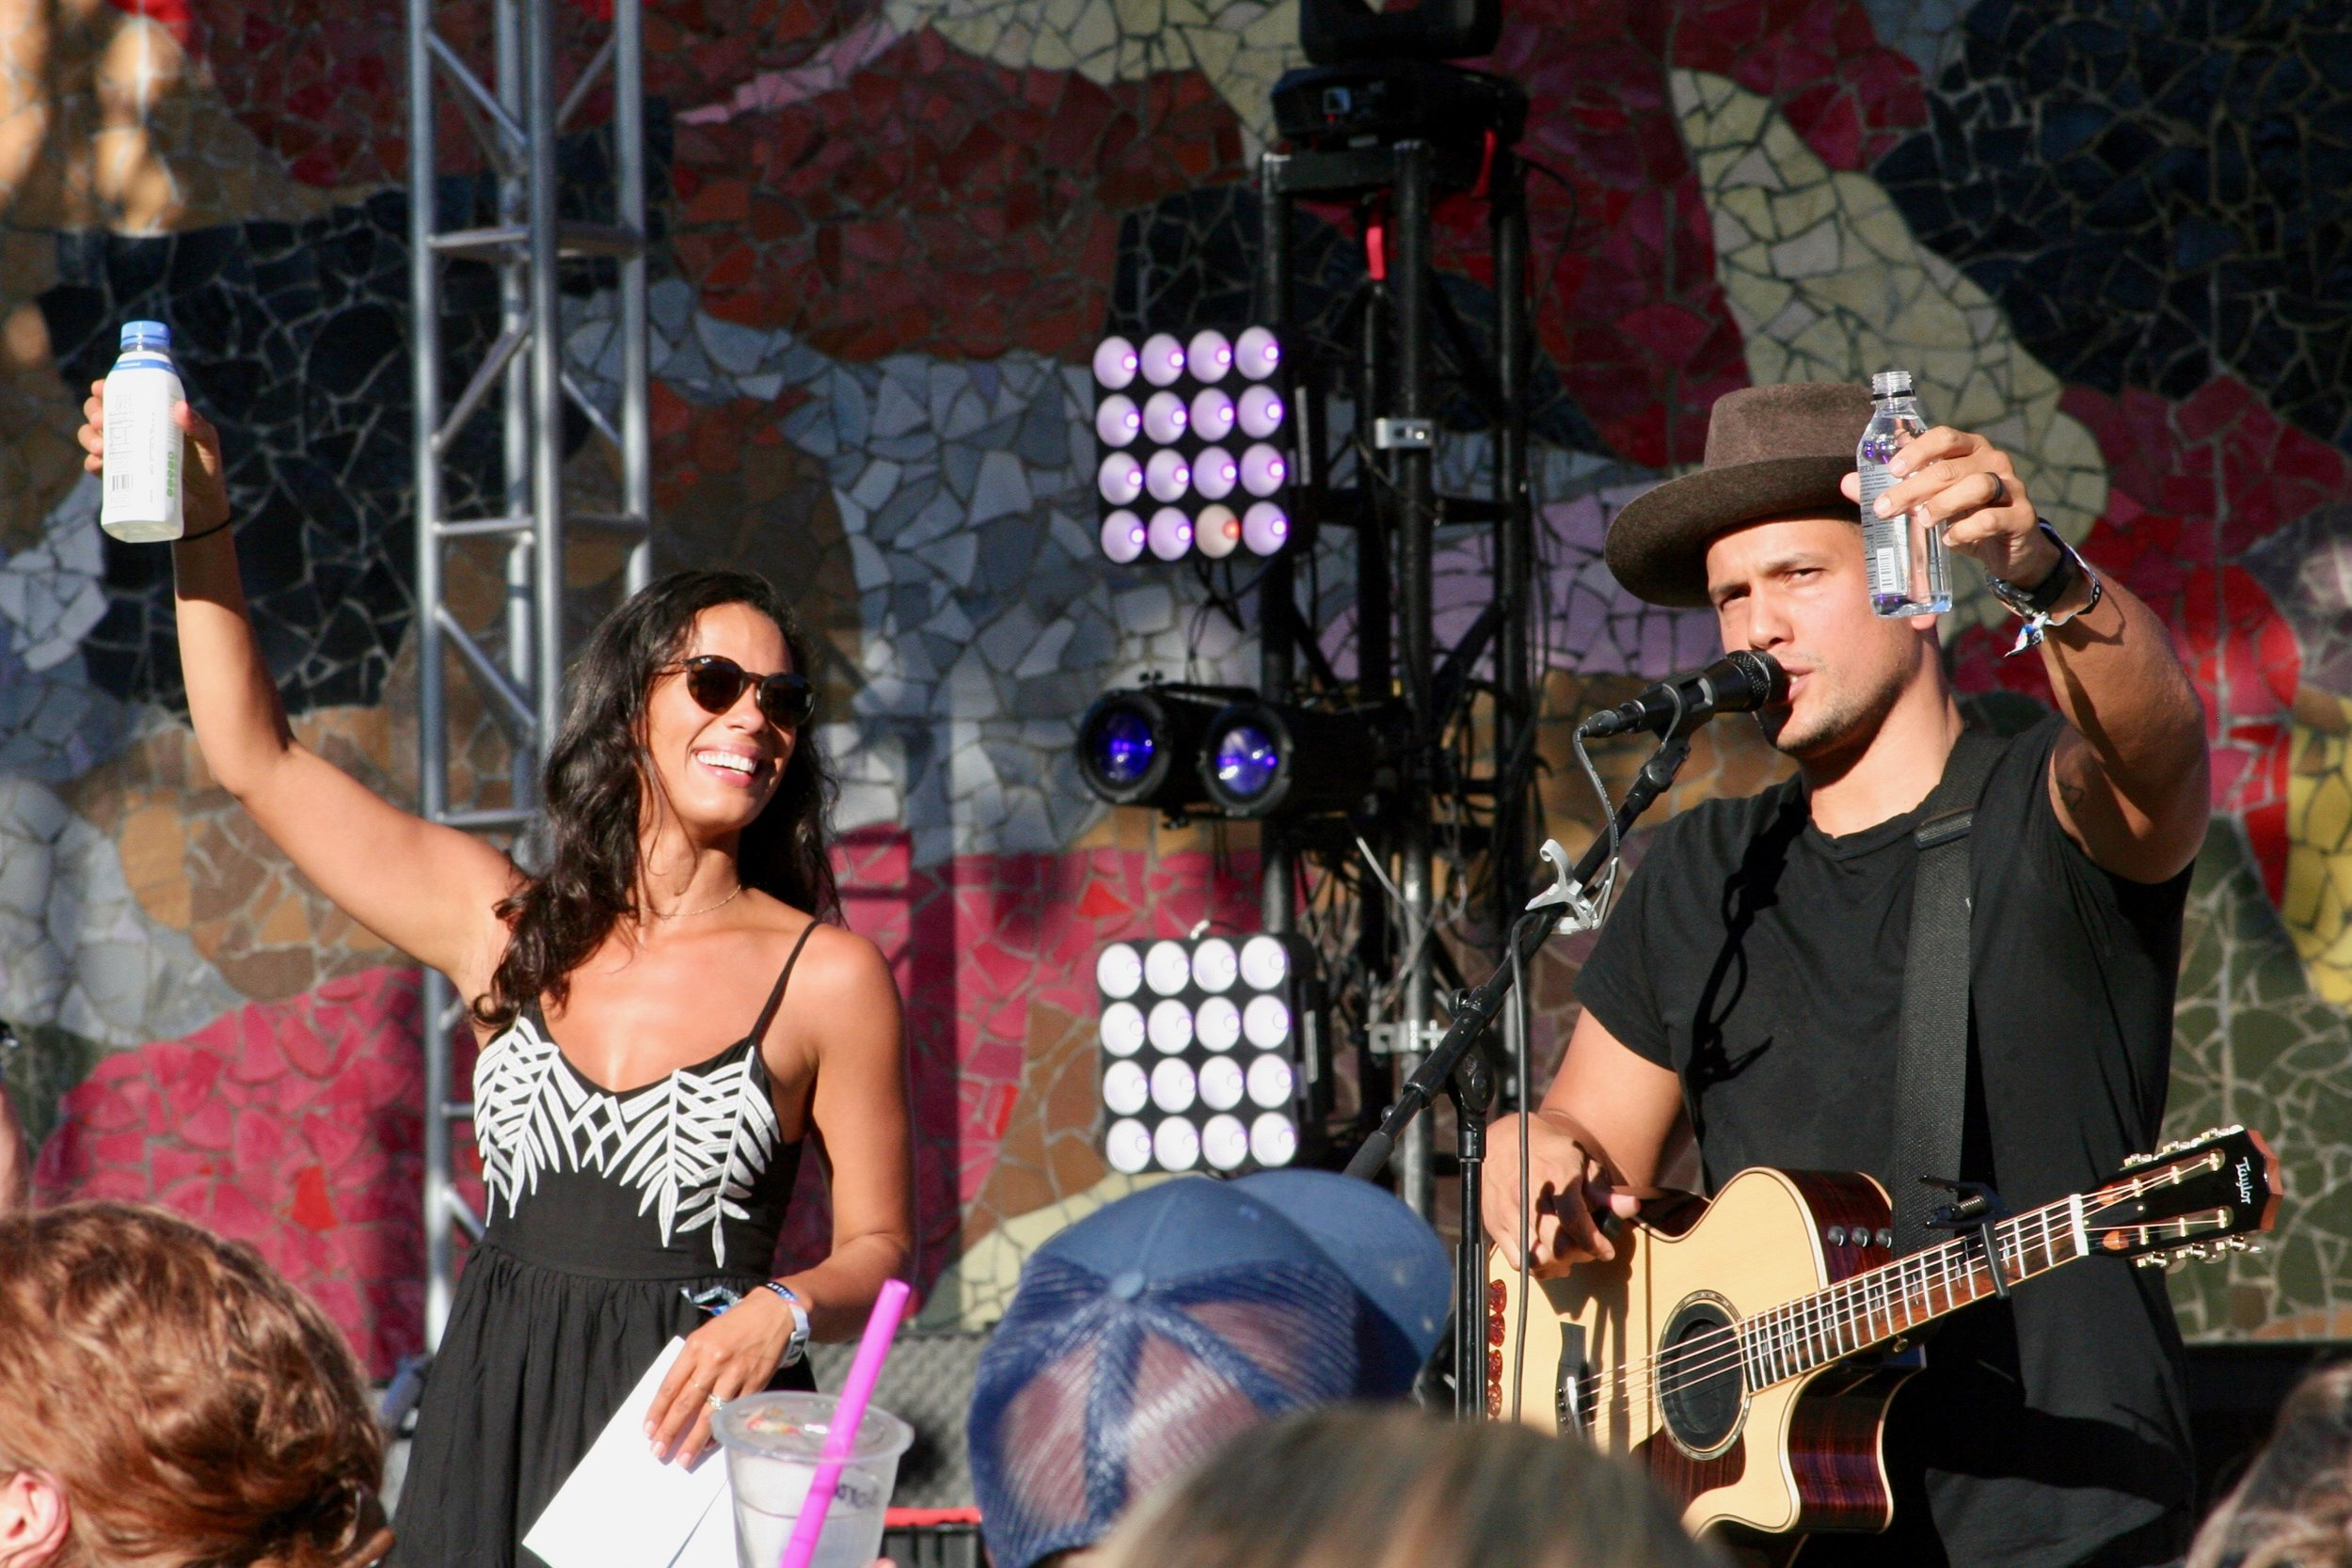 """""""Cheers!"""" Johnnyswim performed songs from their album Georgica Pond. Just beautiful. The music, the artists - unbelievable."""